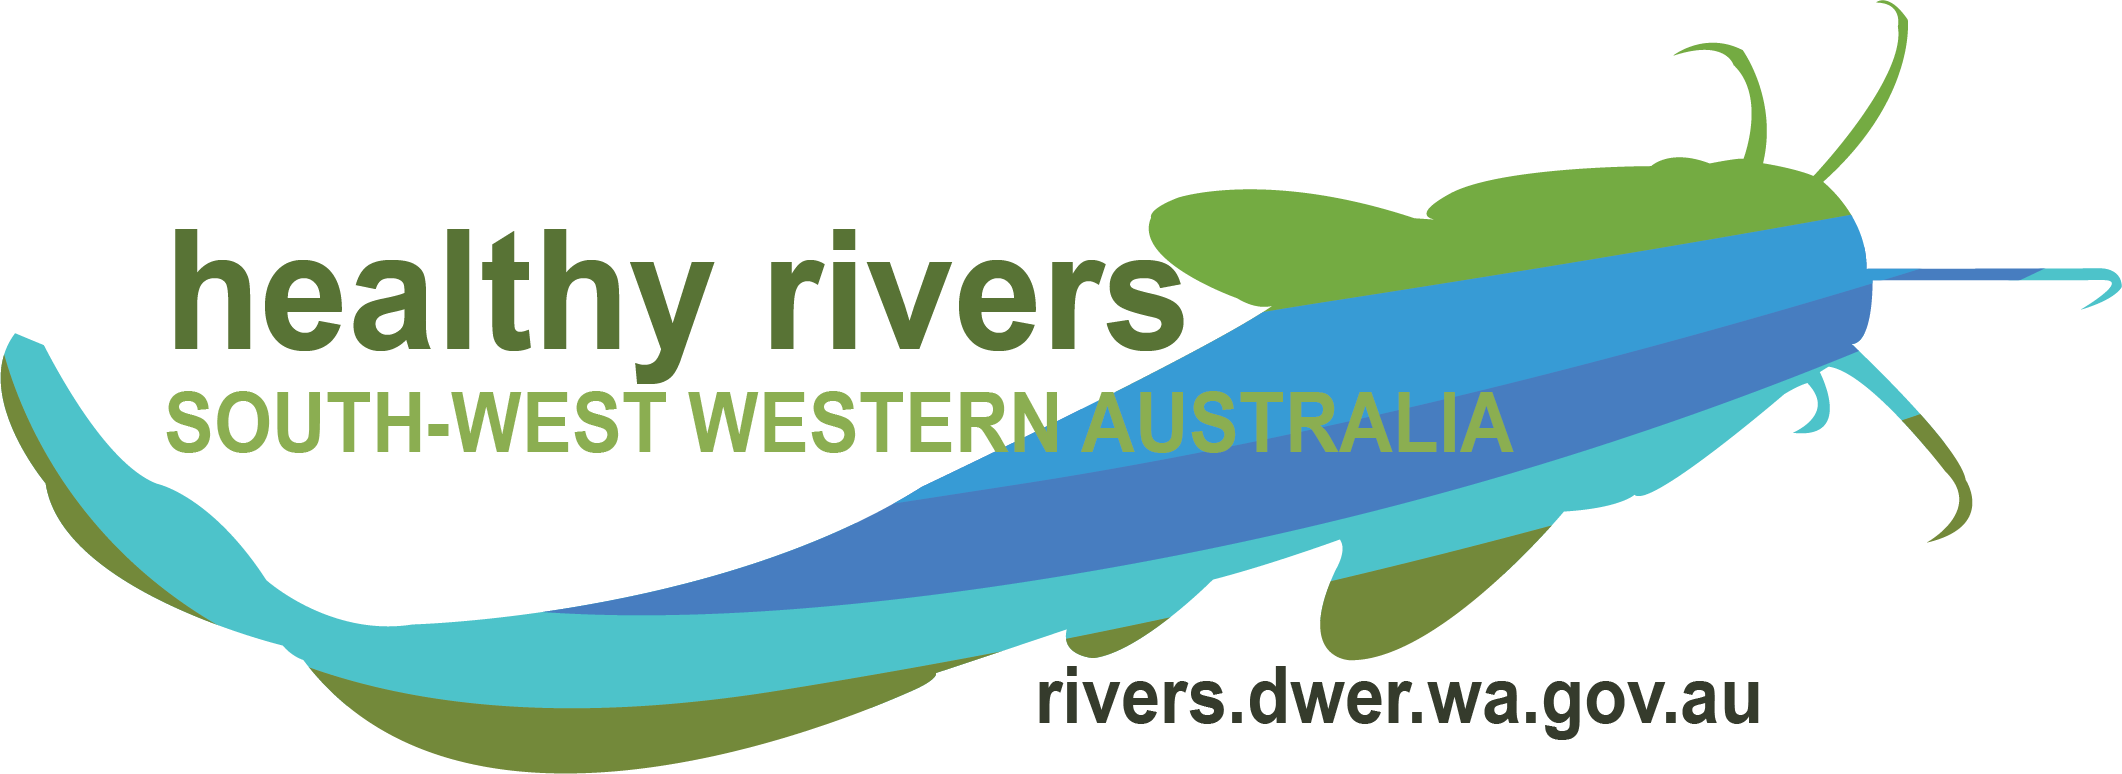 Healthy Rivers program